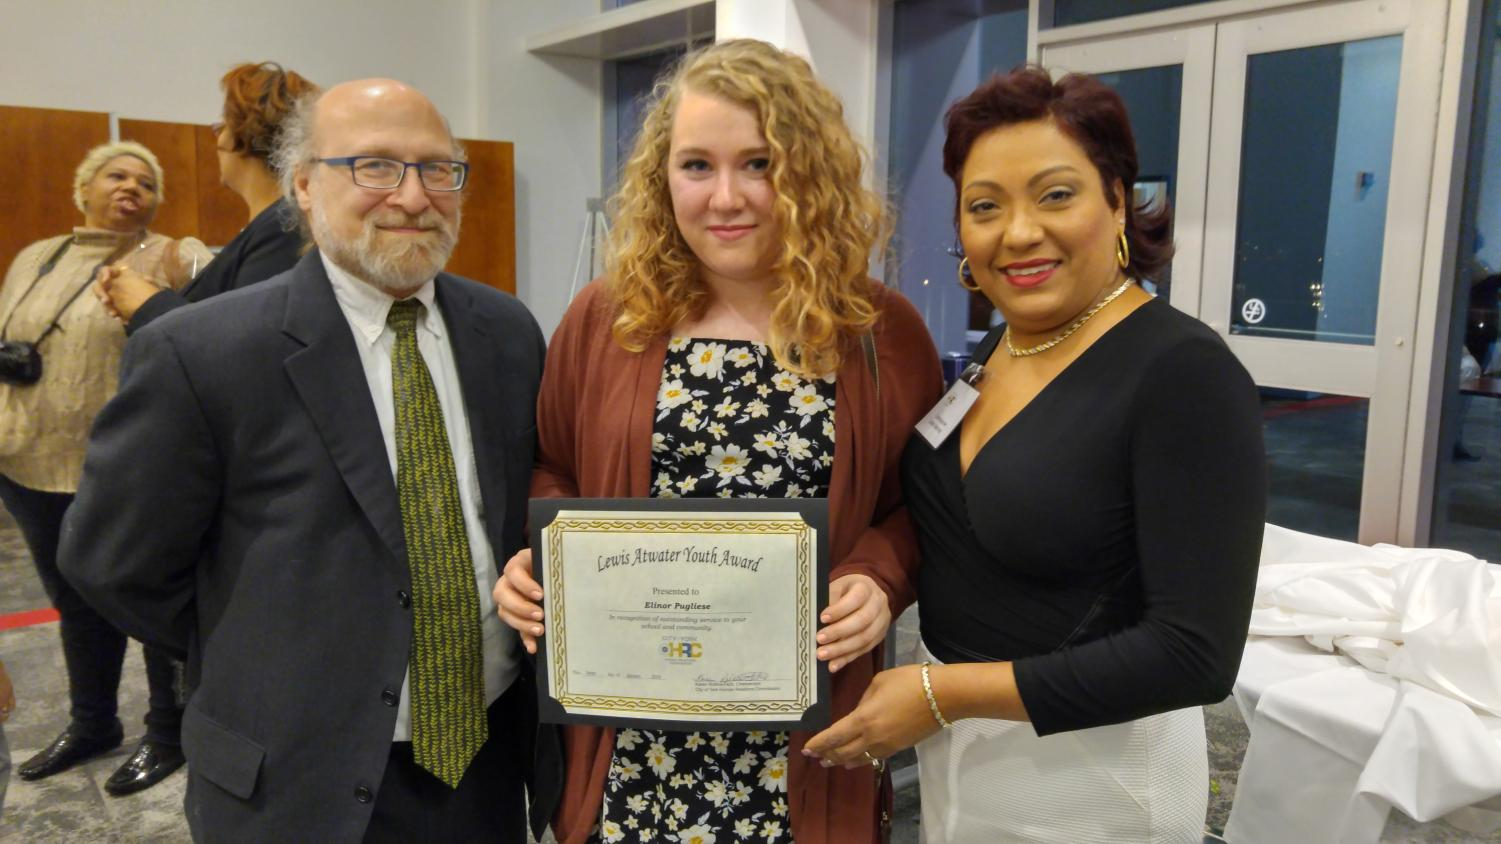 Senior Nell Pugliese receives the Lewis Atwater Youth Award pictured here with her father, Anthony Pugliese, and presenter Debra Martinez.